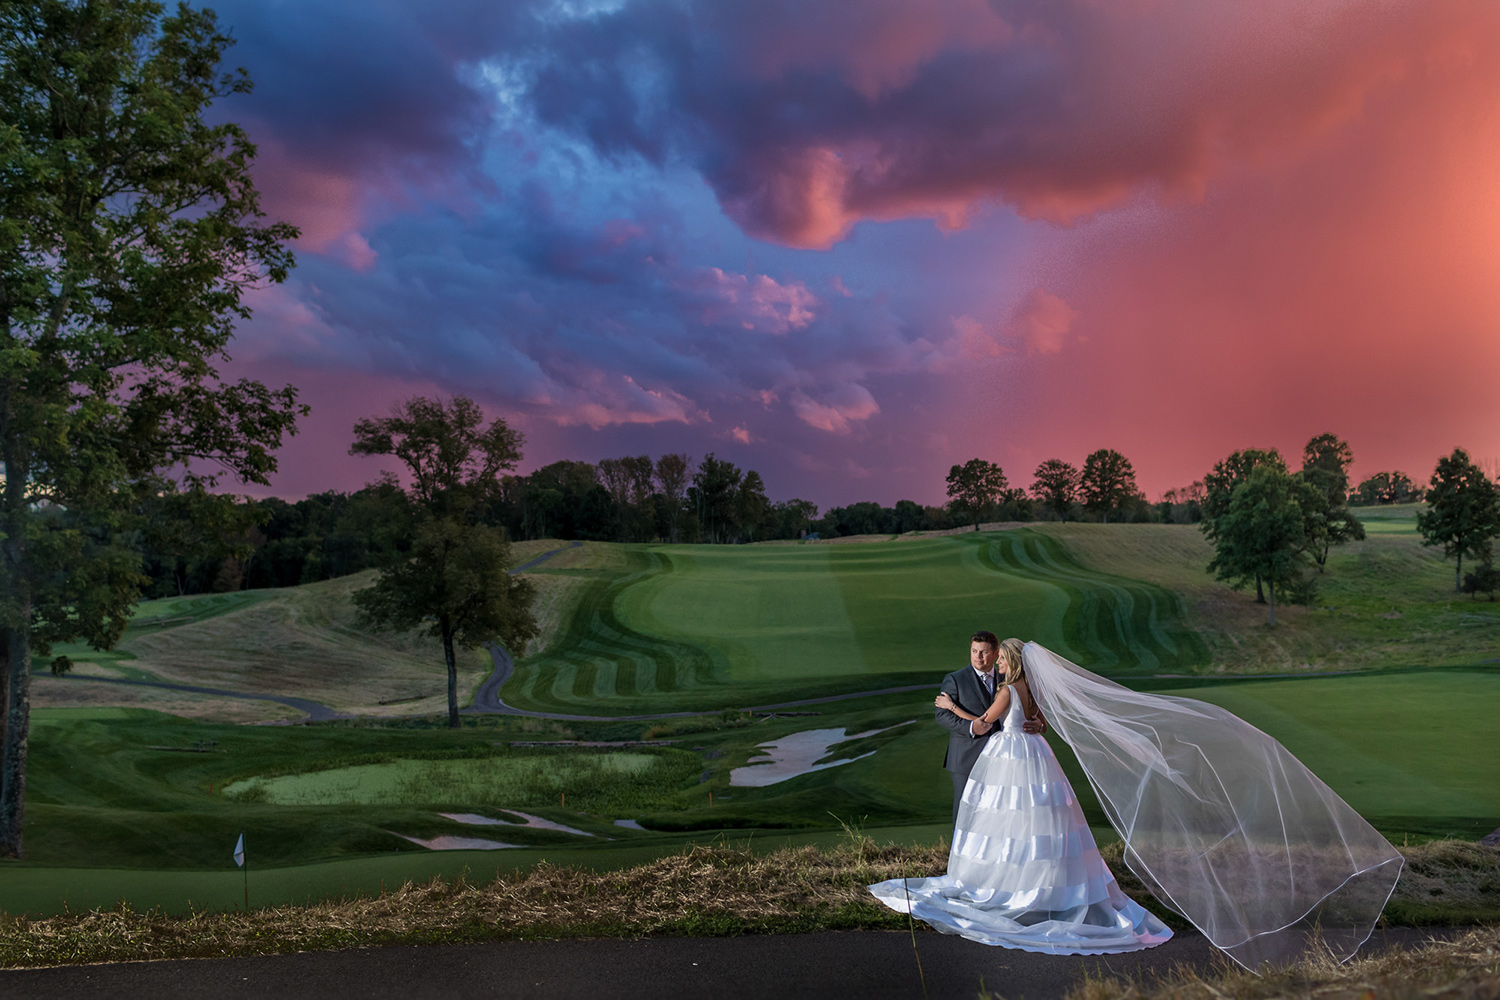 Canon Explorers of Light  – Q&A with Photographer Vanessa Joy. A bride and groom photographed against a pink and blue stormy sky and rolling green hills.